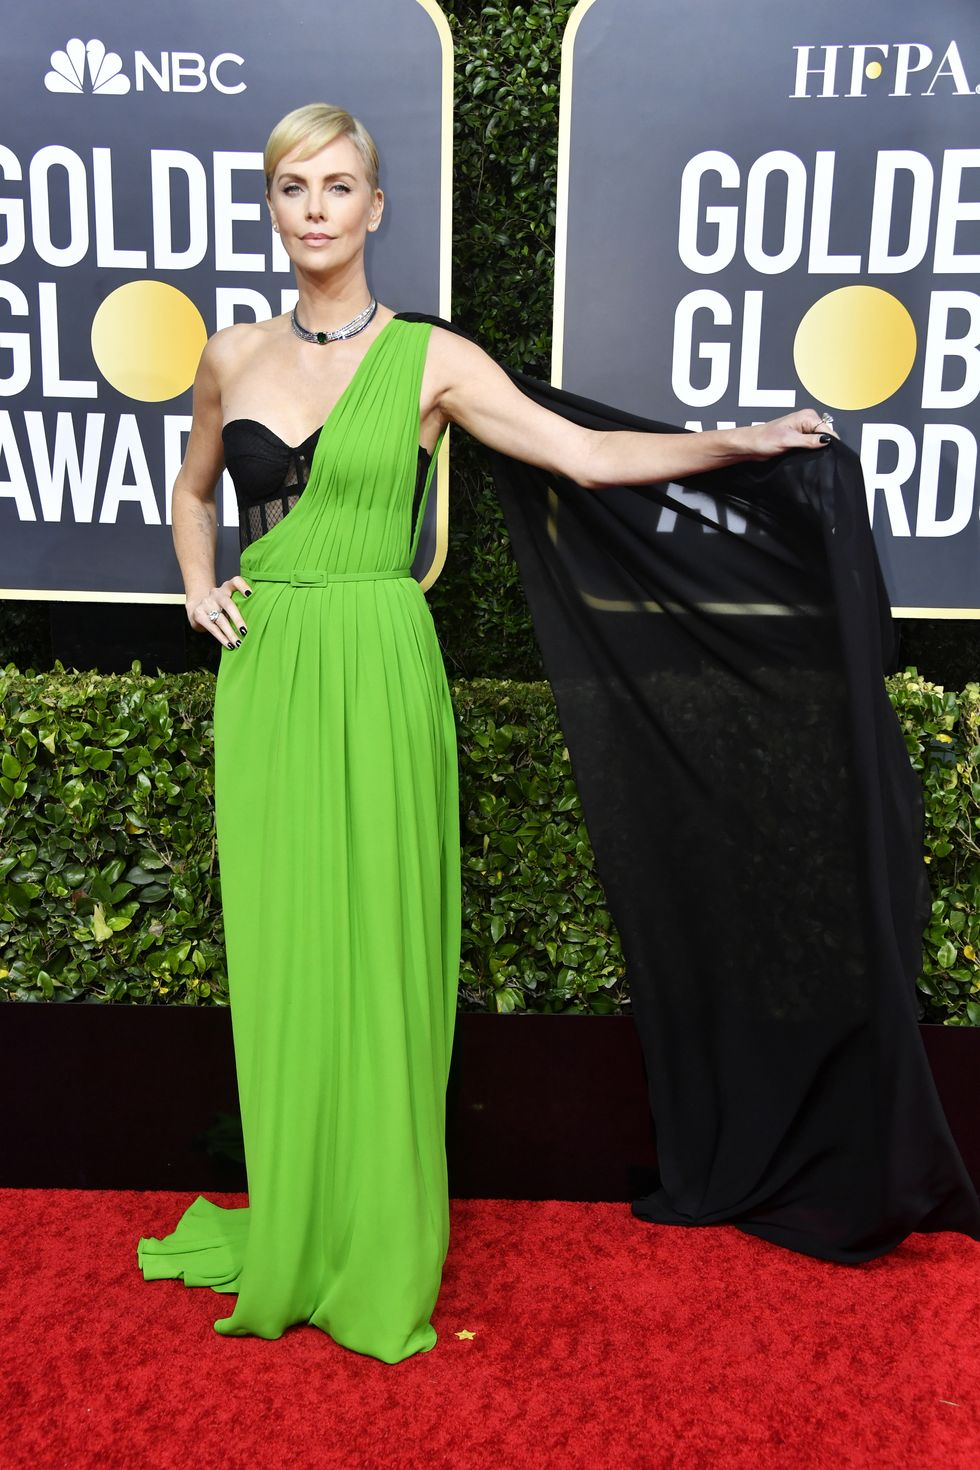 Charlize Theron goes bold in green Christian Dior at the 2020 Golden Globe Awards